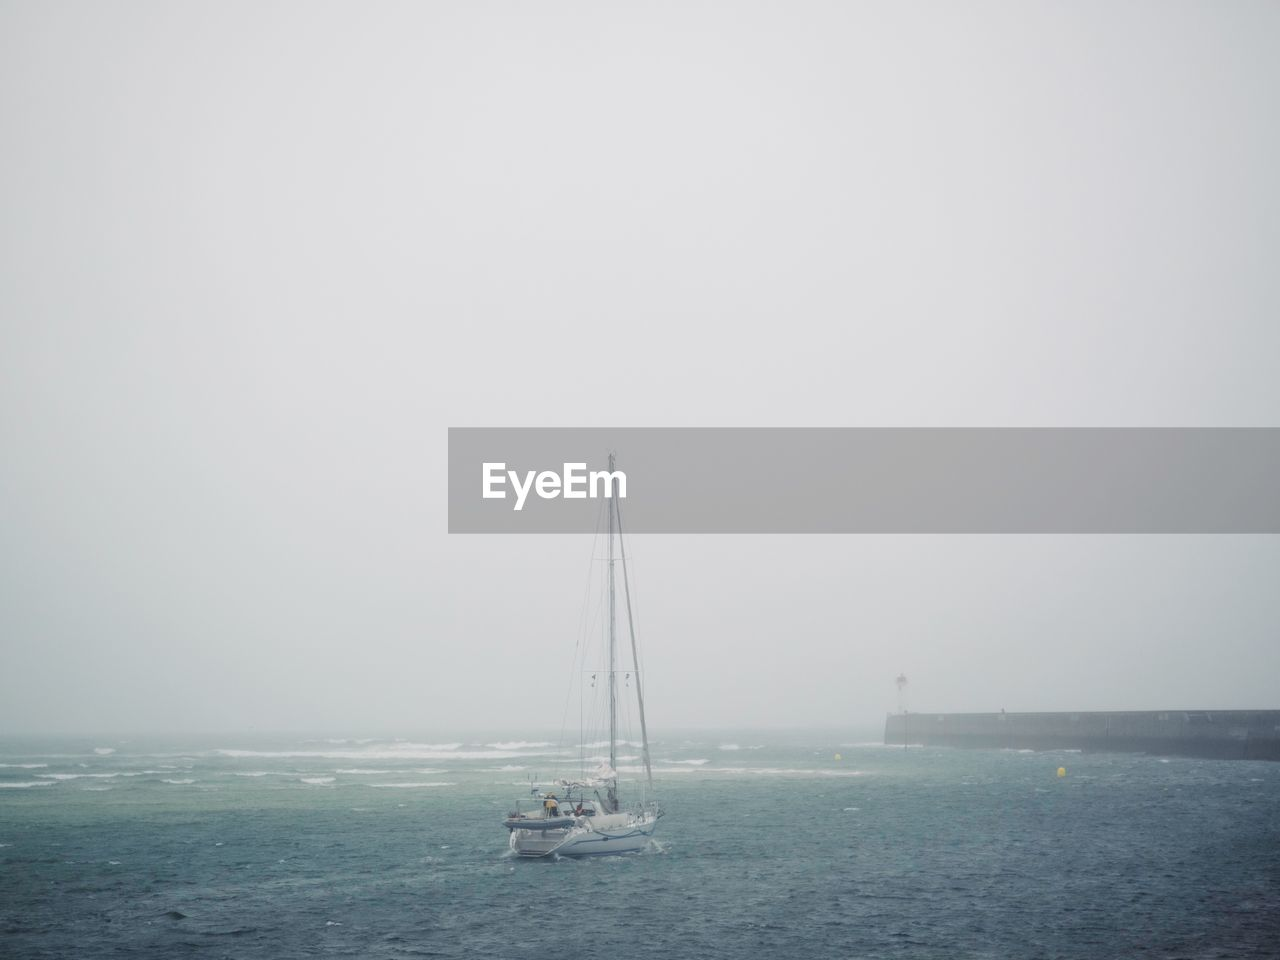 nautical vessel, sea, water, sky, transportation, copy space, sailboat, mode of transportation, fog, horizon, horizon over water, pole, sailing, scenics - nature, beauty in nature, nature, day, tranquil scene, no people, outdoors, yacht, luxury